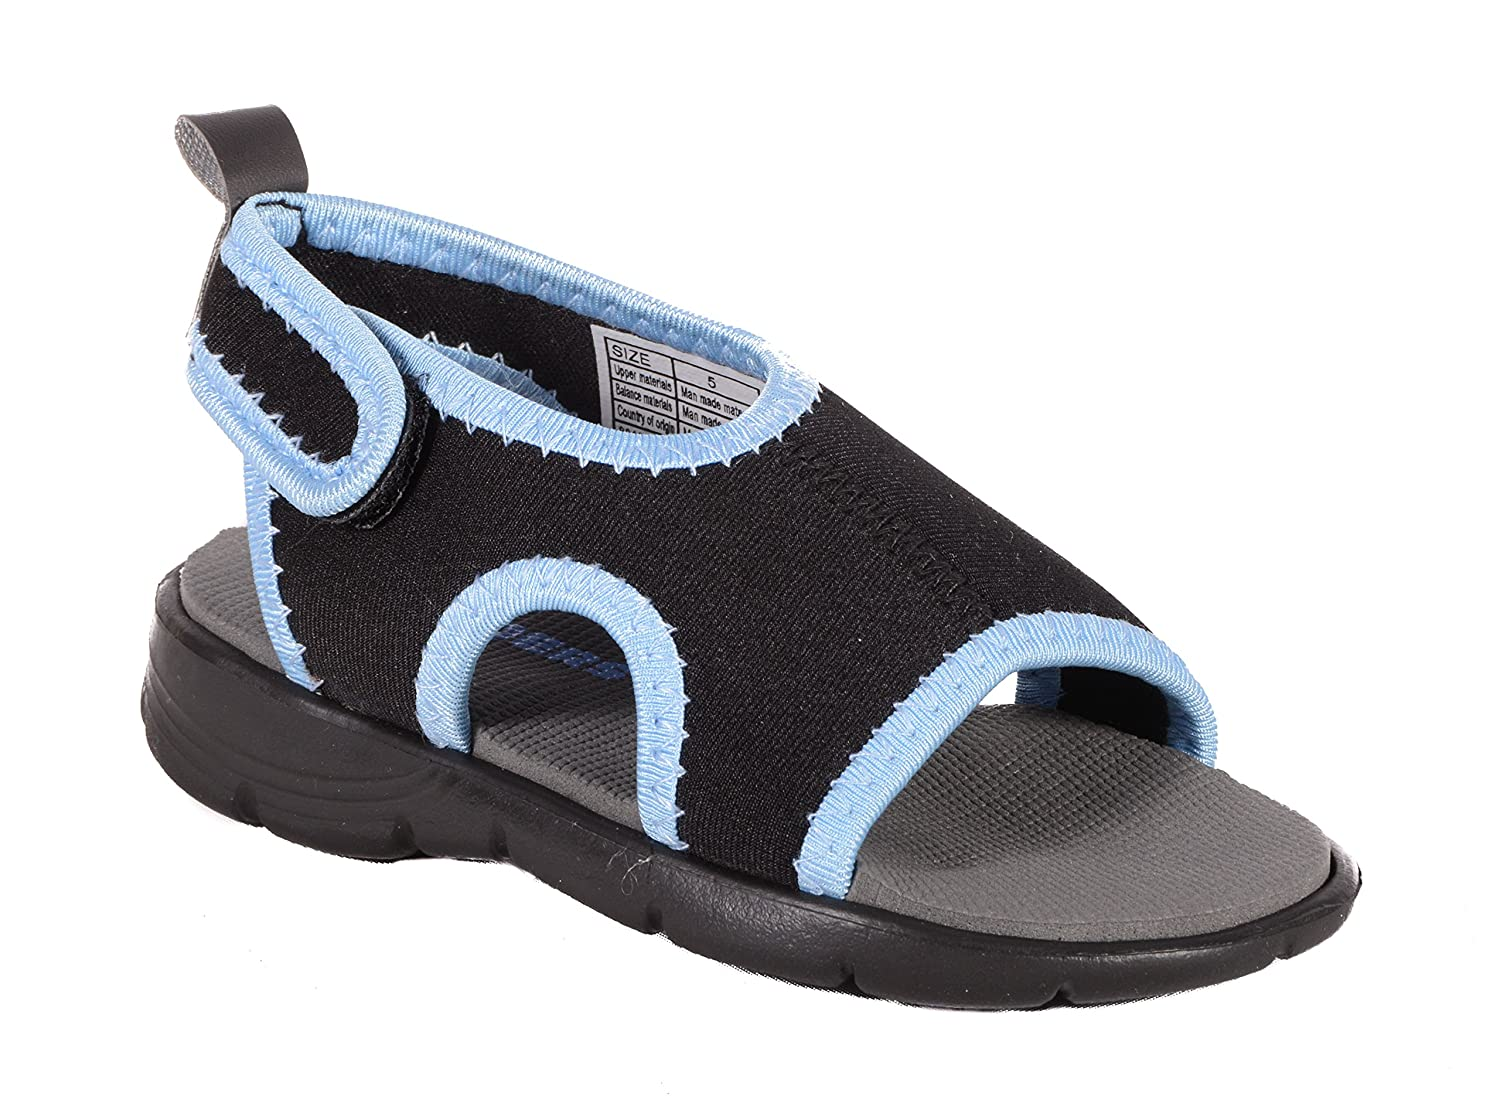 826fef3f6d10 SkidDERS Toddler Boys Water Friendly Lightweight Sandals Style SK1099   Amazon.co.uk  Shoes   Bags